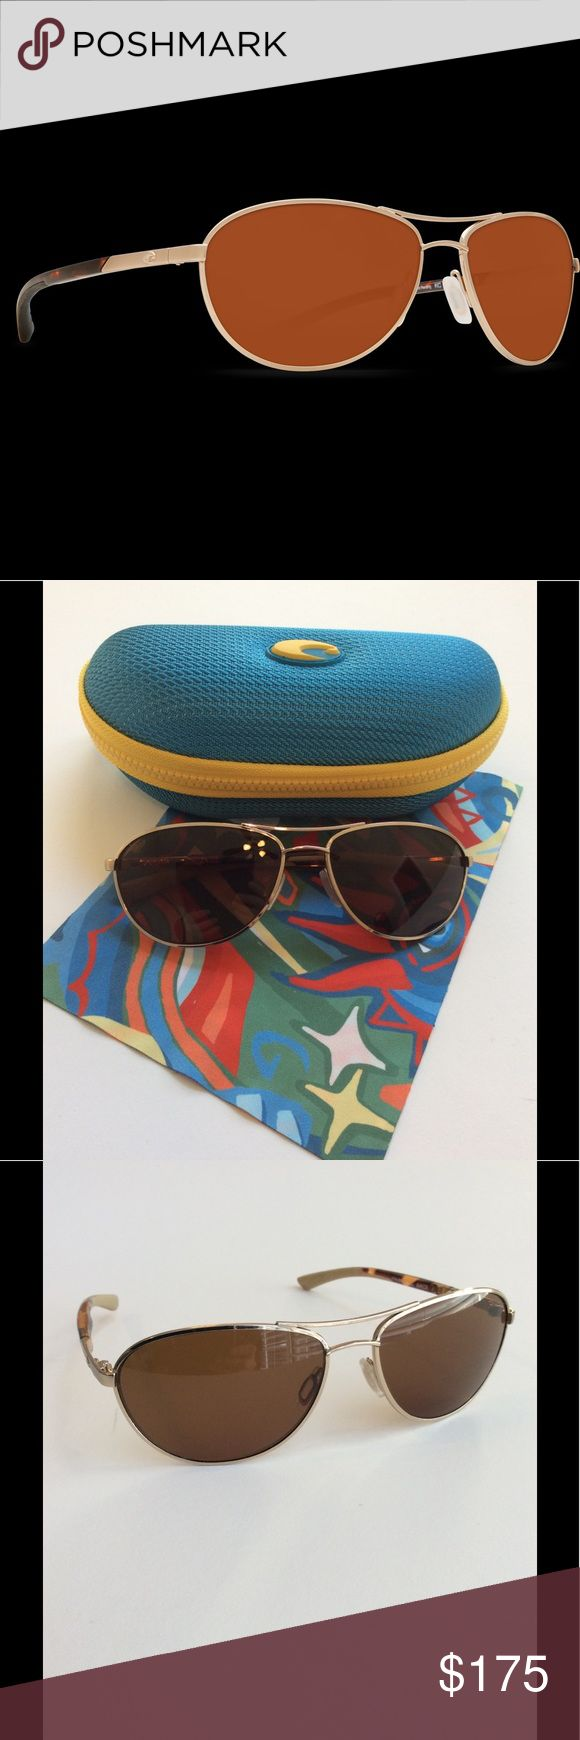 Costa Del Mar Sunglasses Kenny Chesney line Personally designed for Kenny Chesney, the stylish Costa KC sunglasses feature classic style and a one of a kind rose gold frame. 100% polarized frames (580), rust resistant, unisex. Lens color is copper. Perfect condition, worn literally one time. Costa del mar Accessories Sunglasses